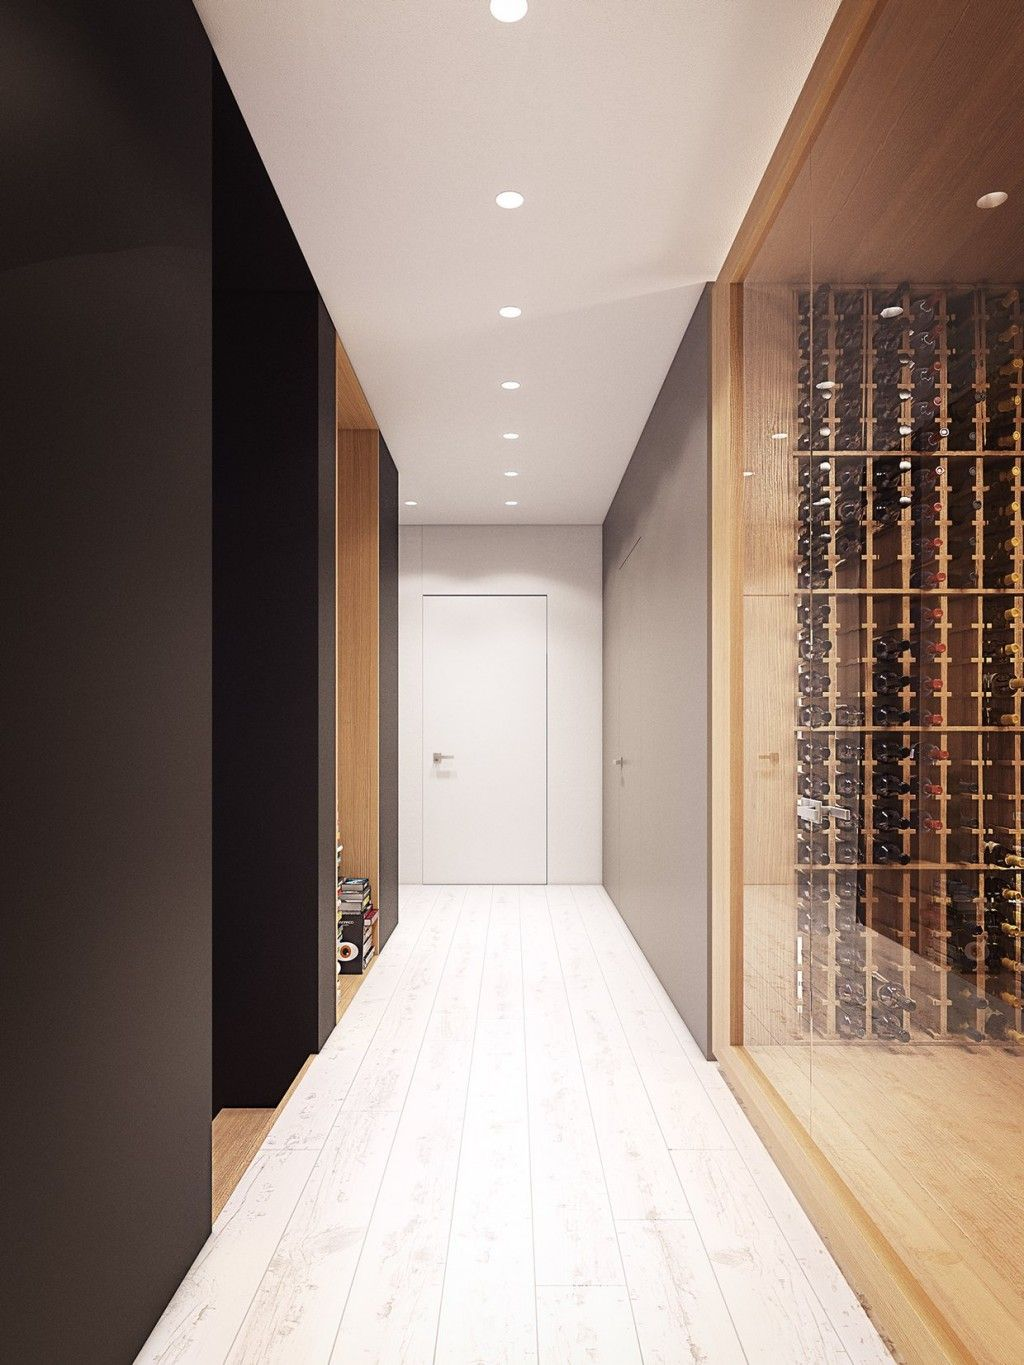 Apartments: Plasterlina Luxurious Entryway Glass Wall Wooden Wine Cabinetry White Wooden Flooring Black Wall Stained: Lofted Opulence